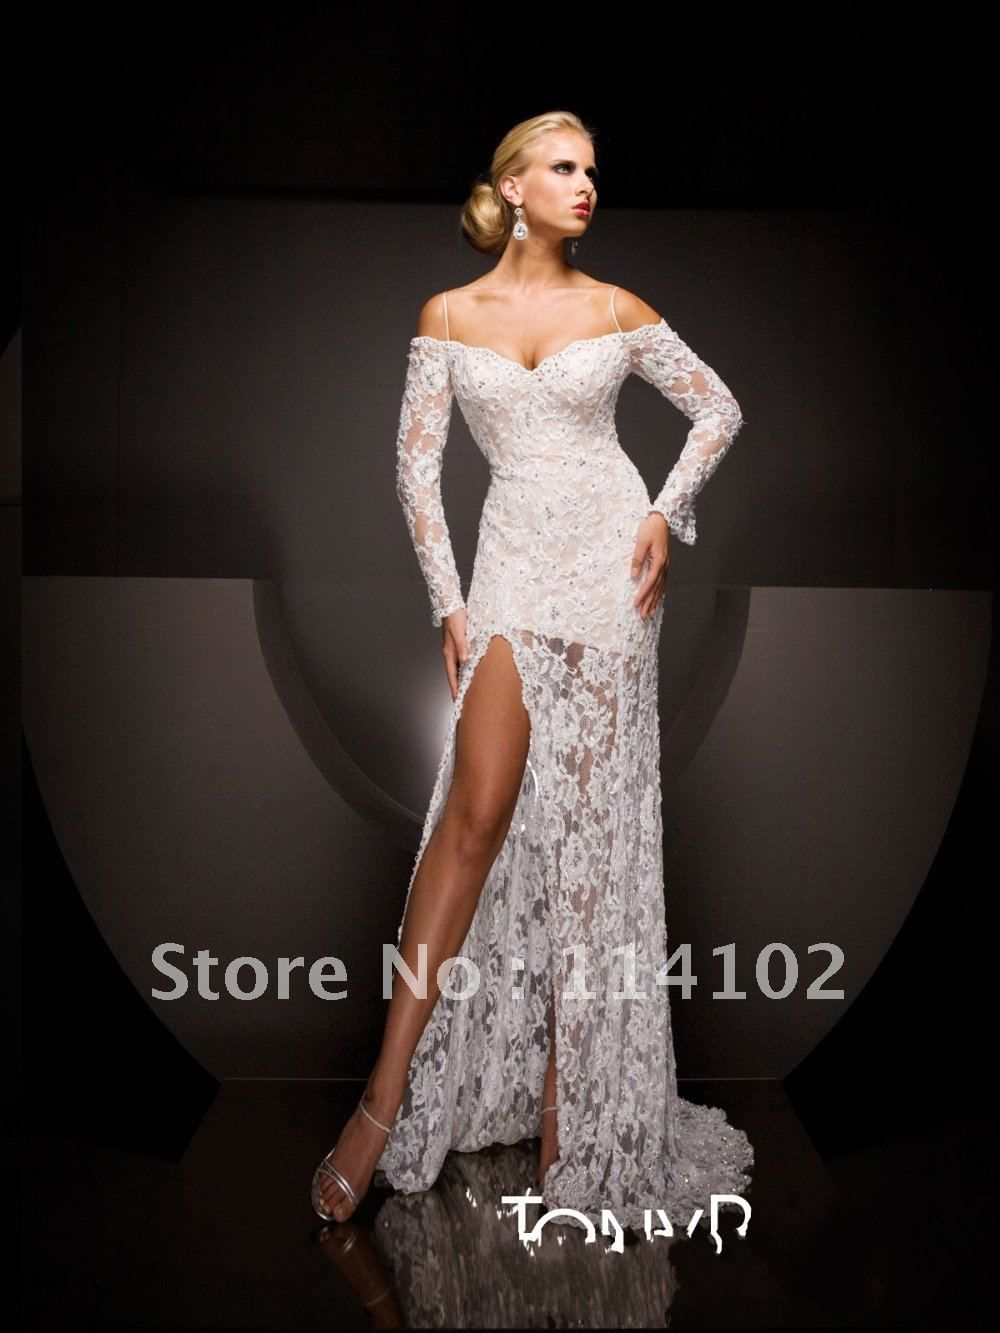 Lace Reception Wedding Dress